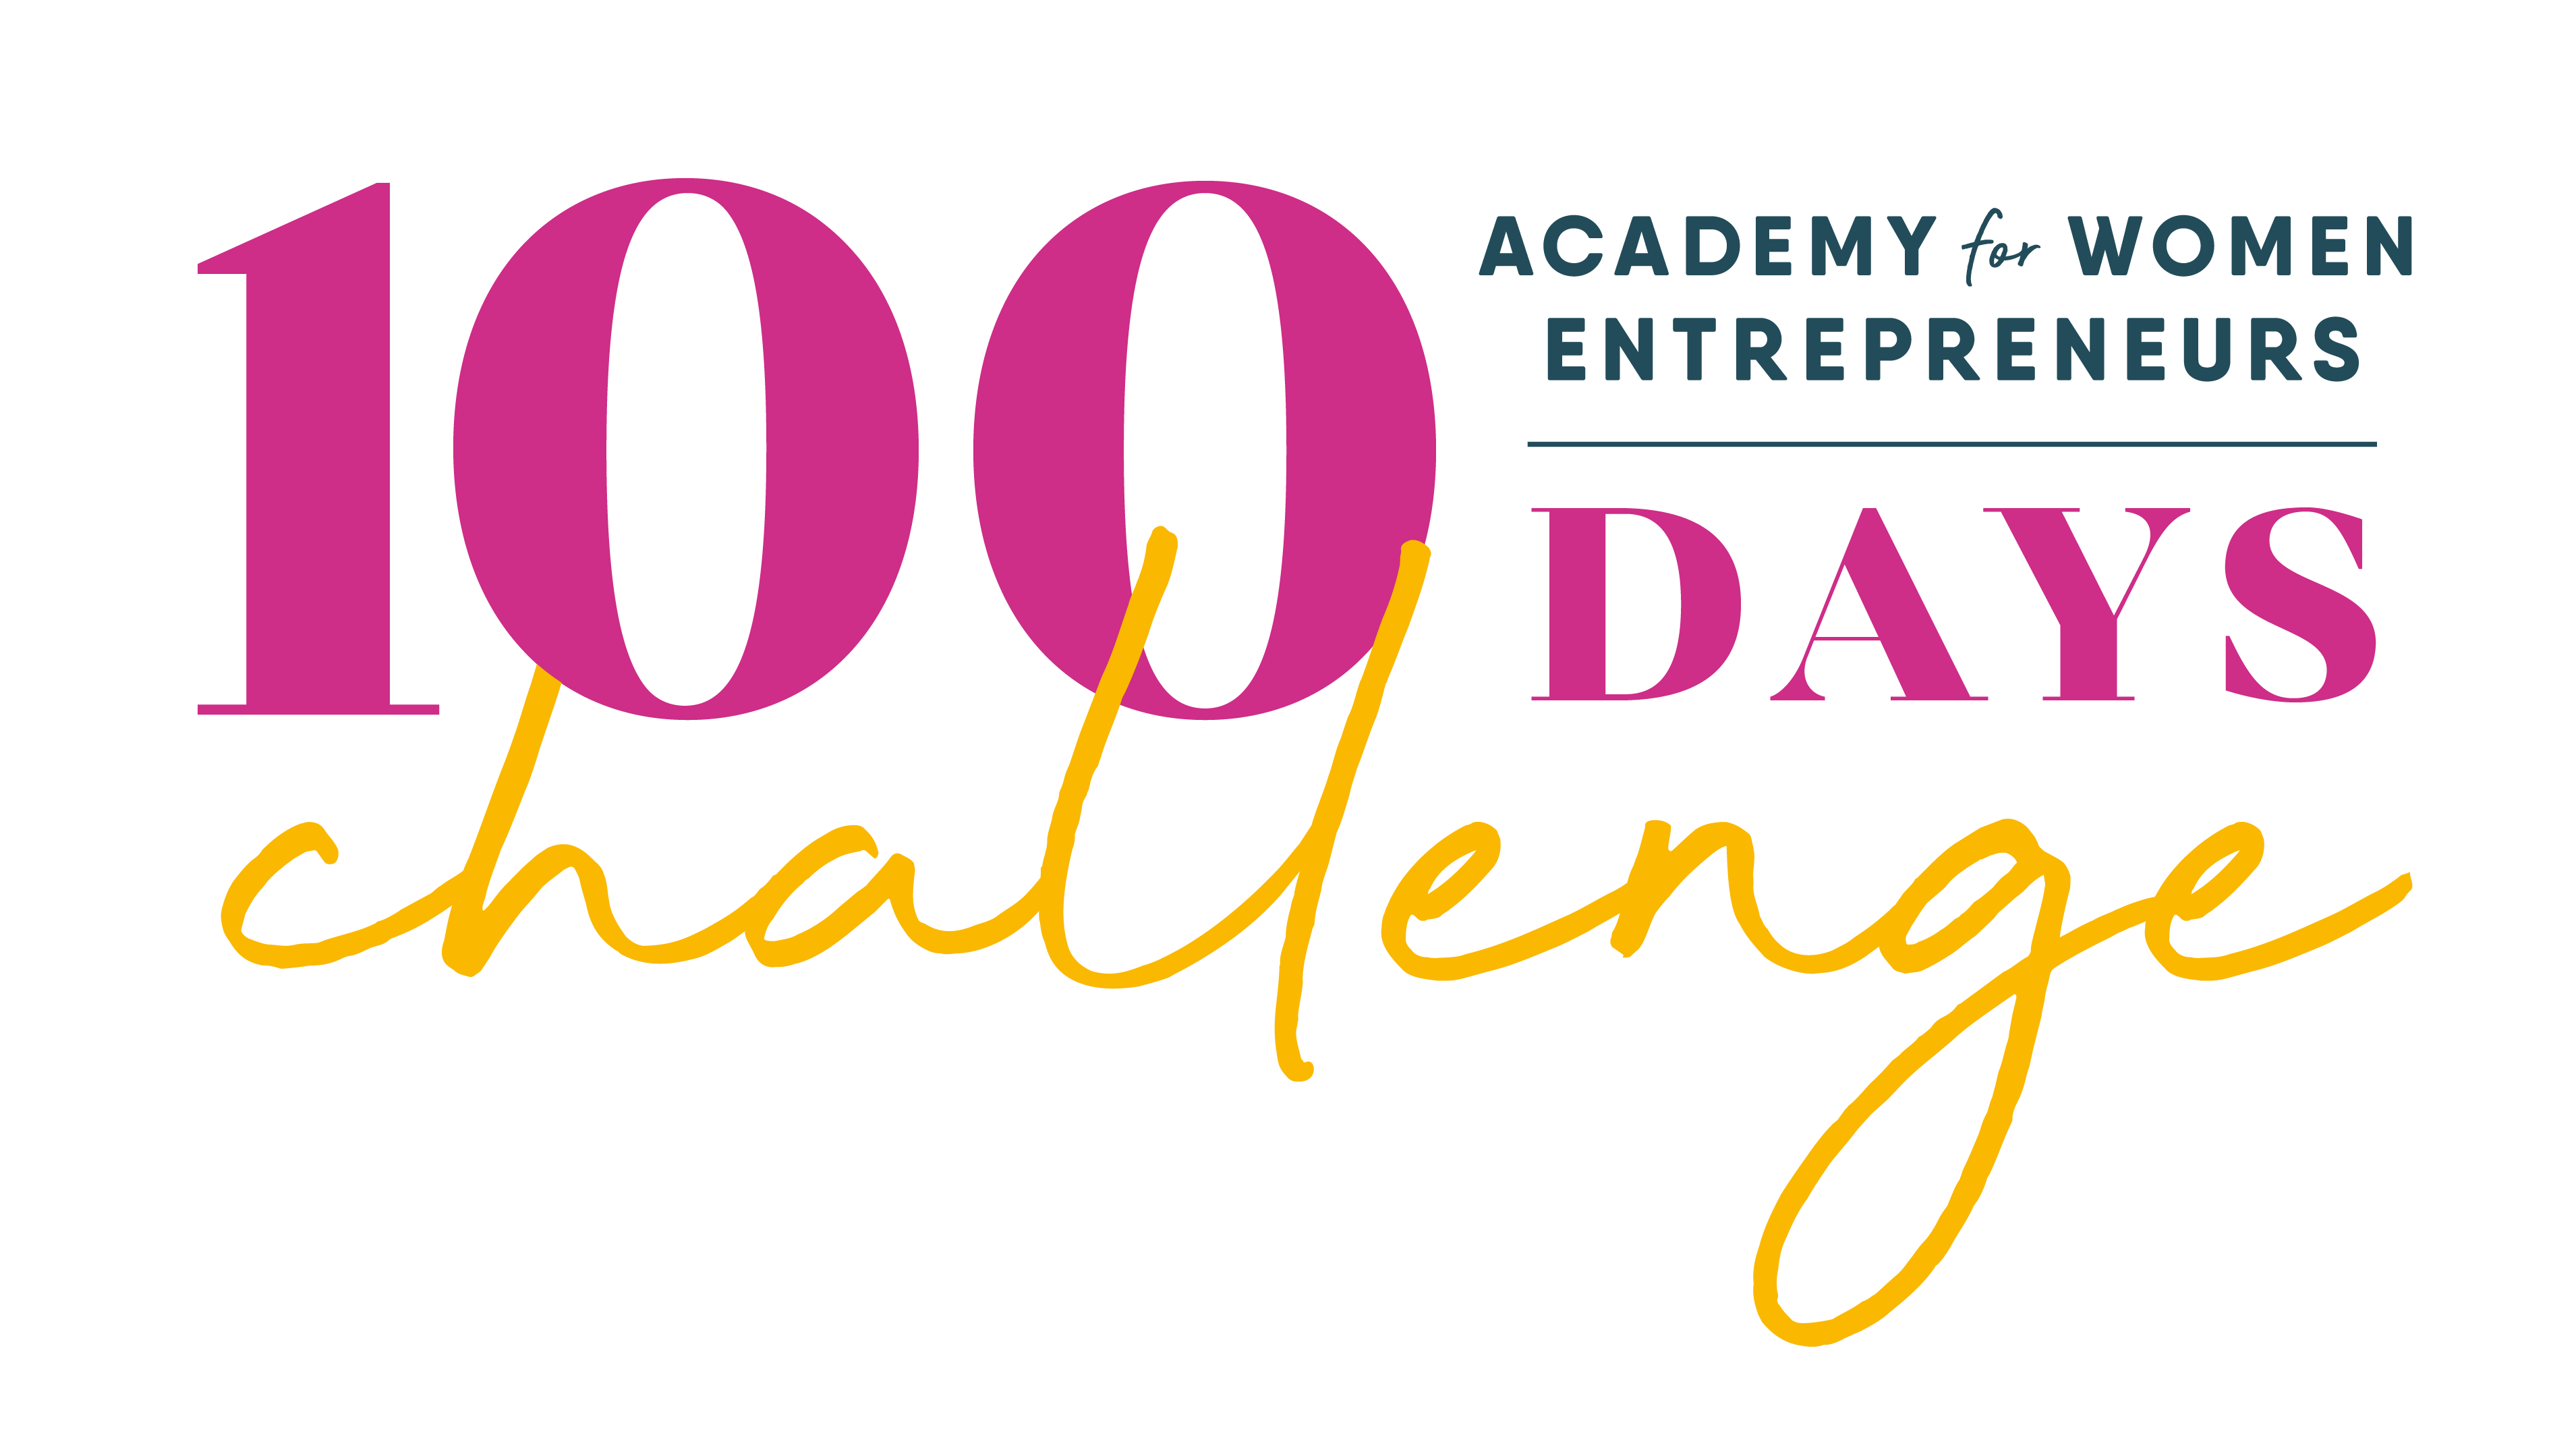 Would you like to double your business in the next 100 days?